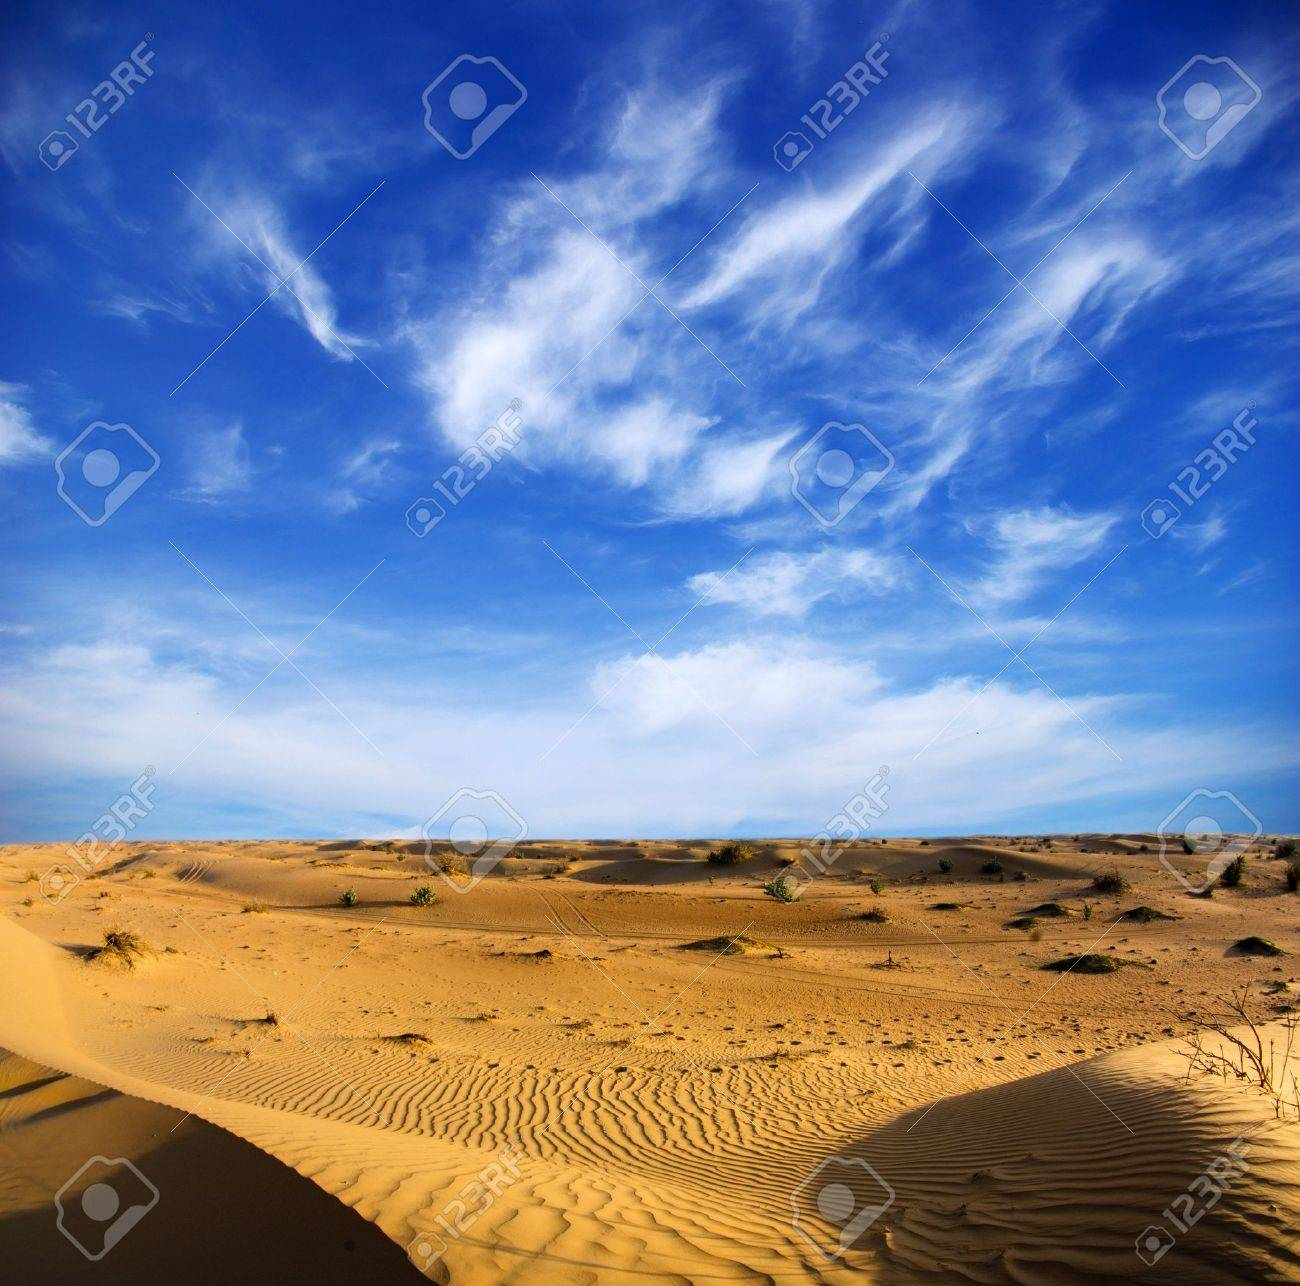 Desert landscape with blue sky Stock Photo - 16819774